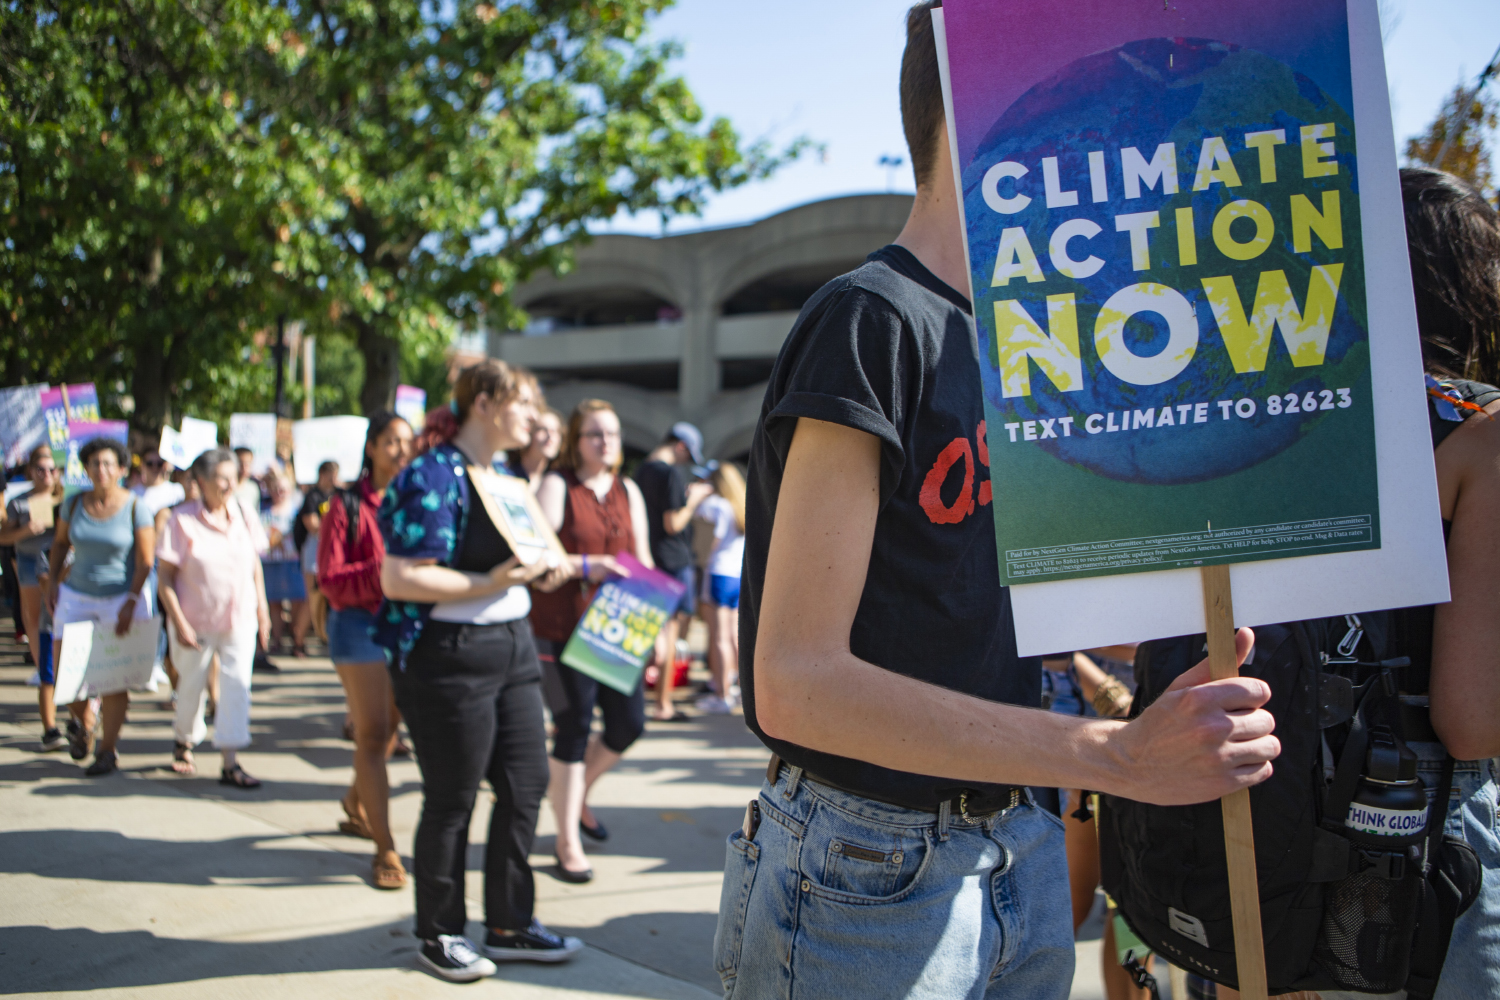 Climate strikers march from City Hall to the Pentacrest to raise awareness about the threat of climate change. The march was one of hundreds taking place around the world on Friday, Sept. 20. (Reba Zatz/The Daily Iowan)